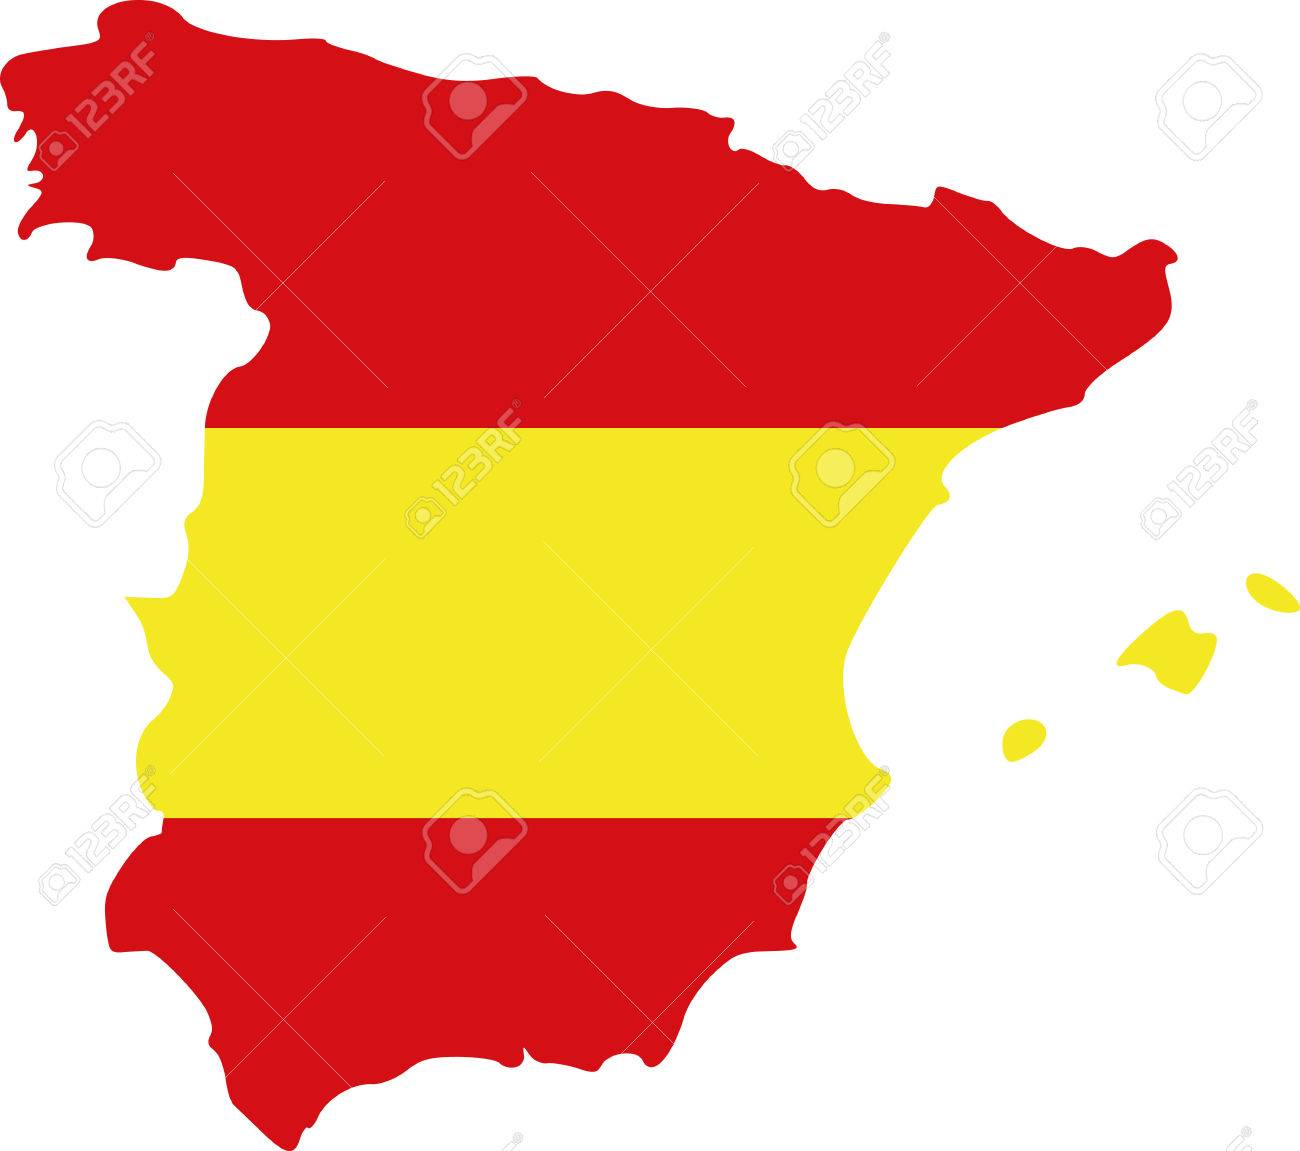 Spain Map Flag.Spain Map With Flag